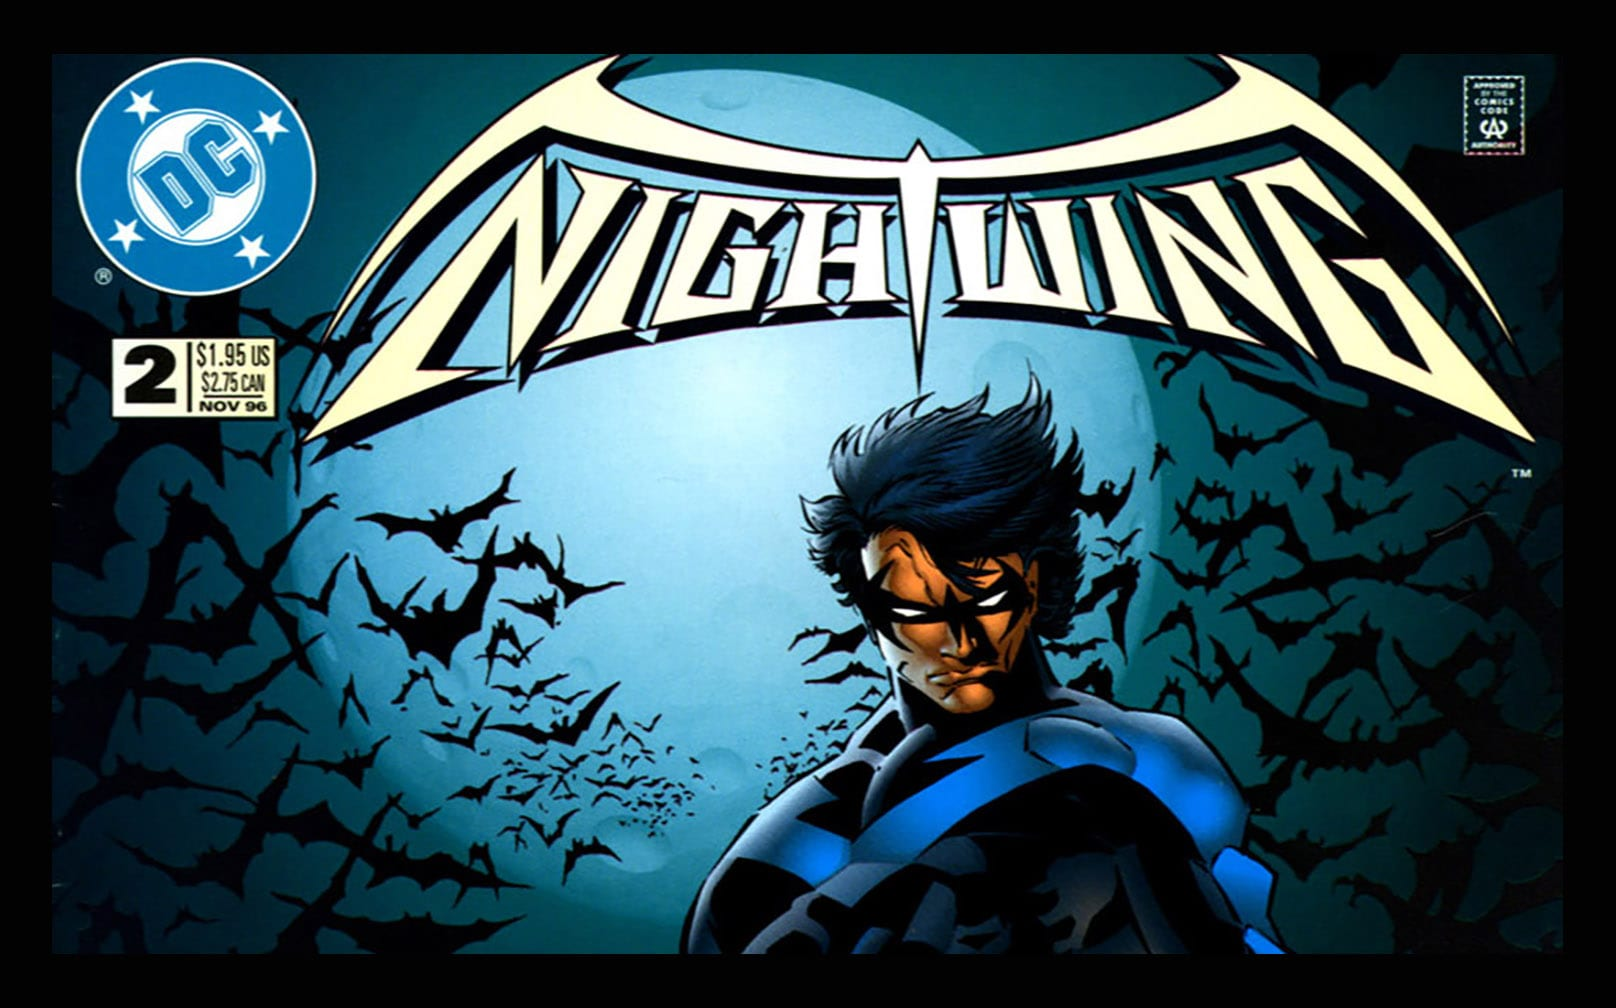 Nerd 101: Where Did Nightwing Get His Name?